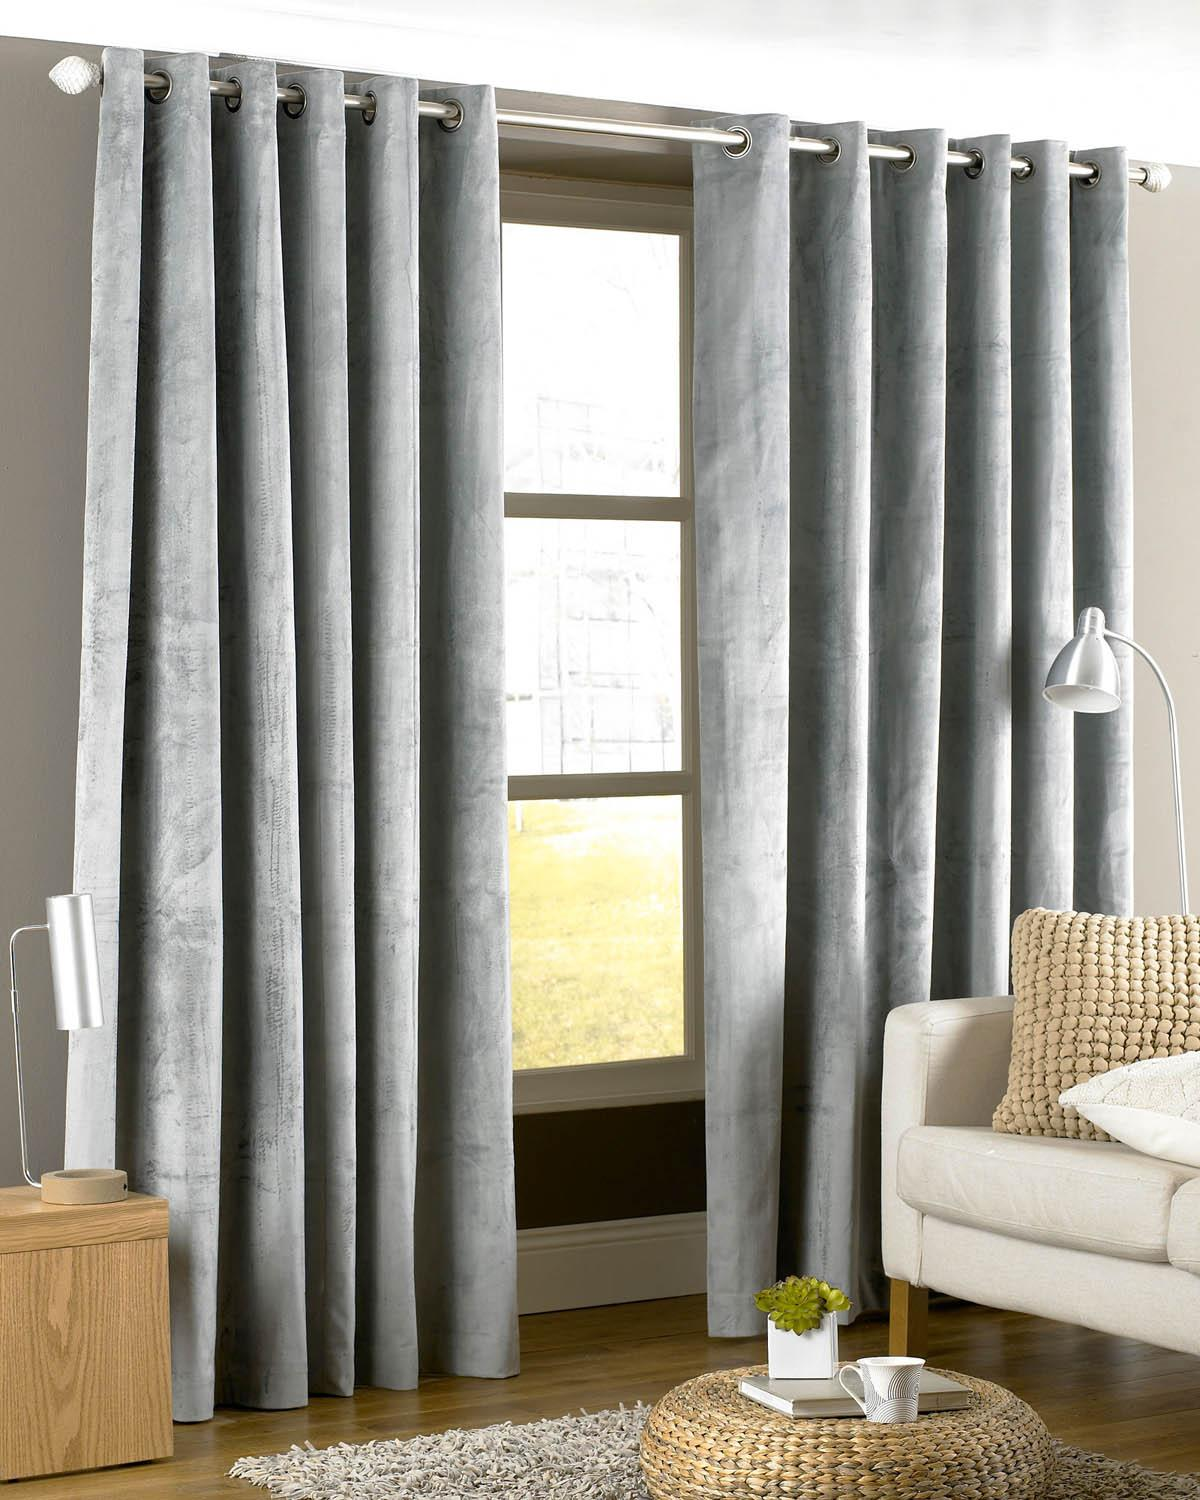 Riva Ready Made Curtains Imperial/Emperor Readymade Lined curtains Silver